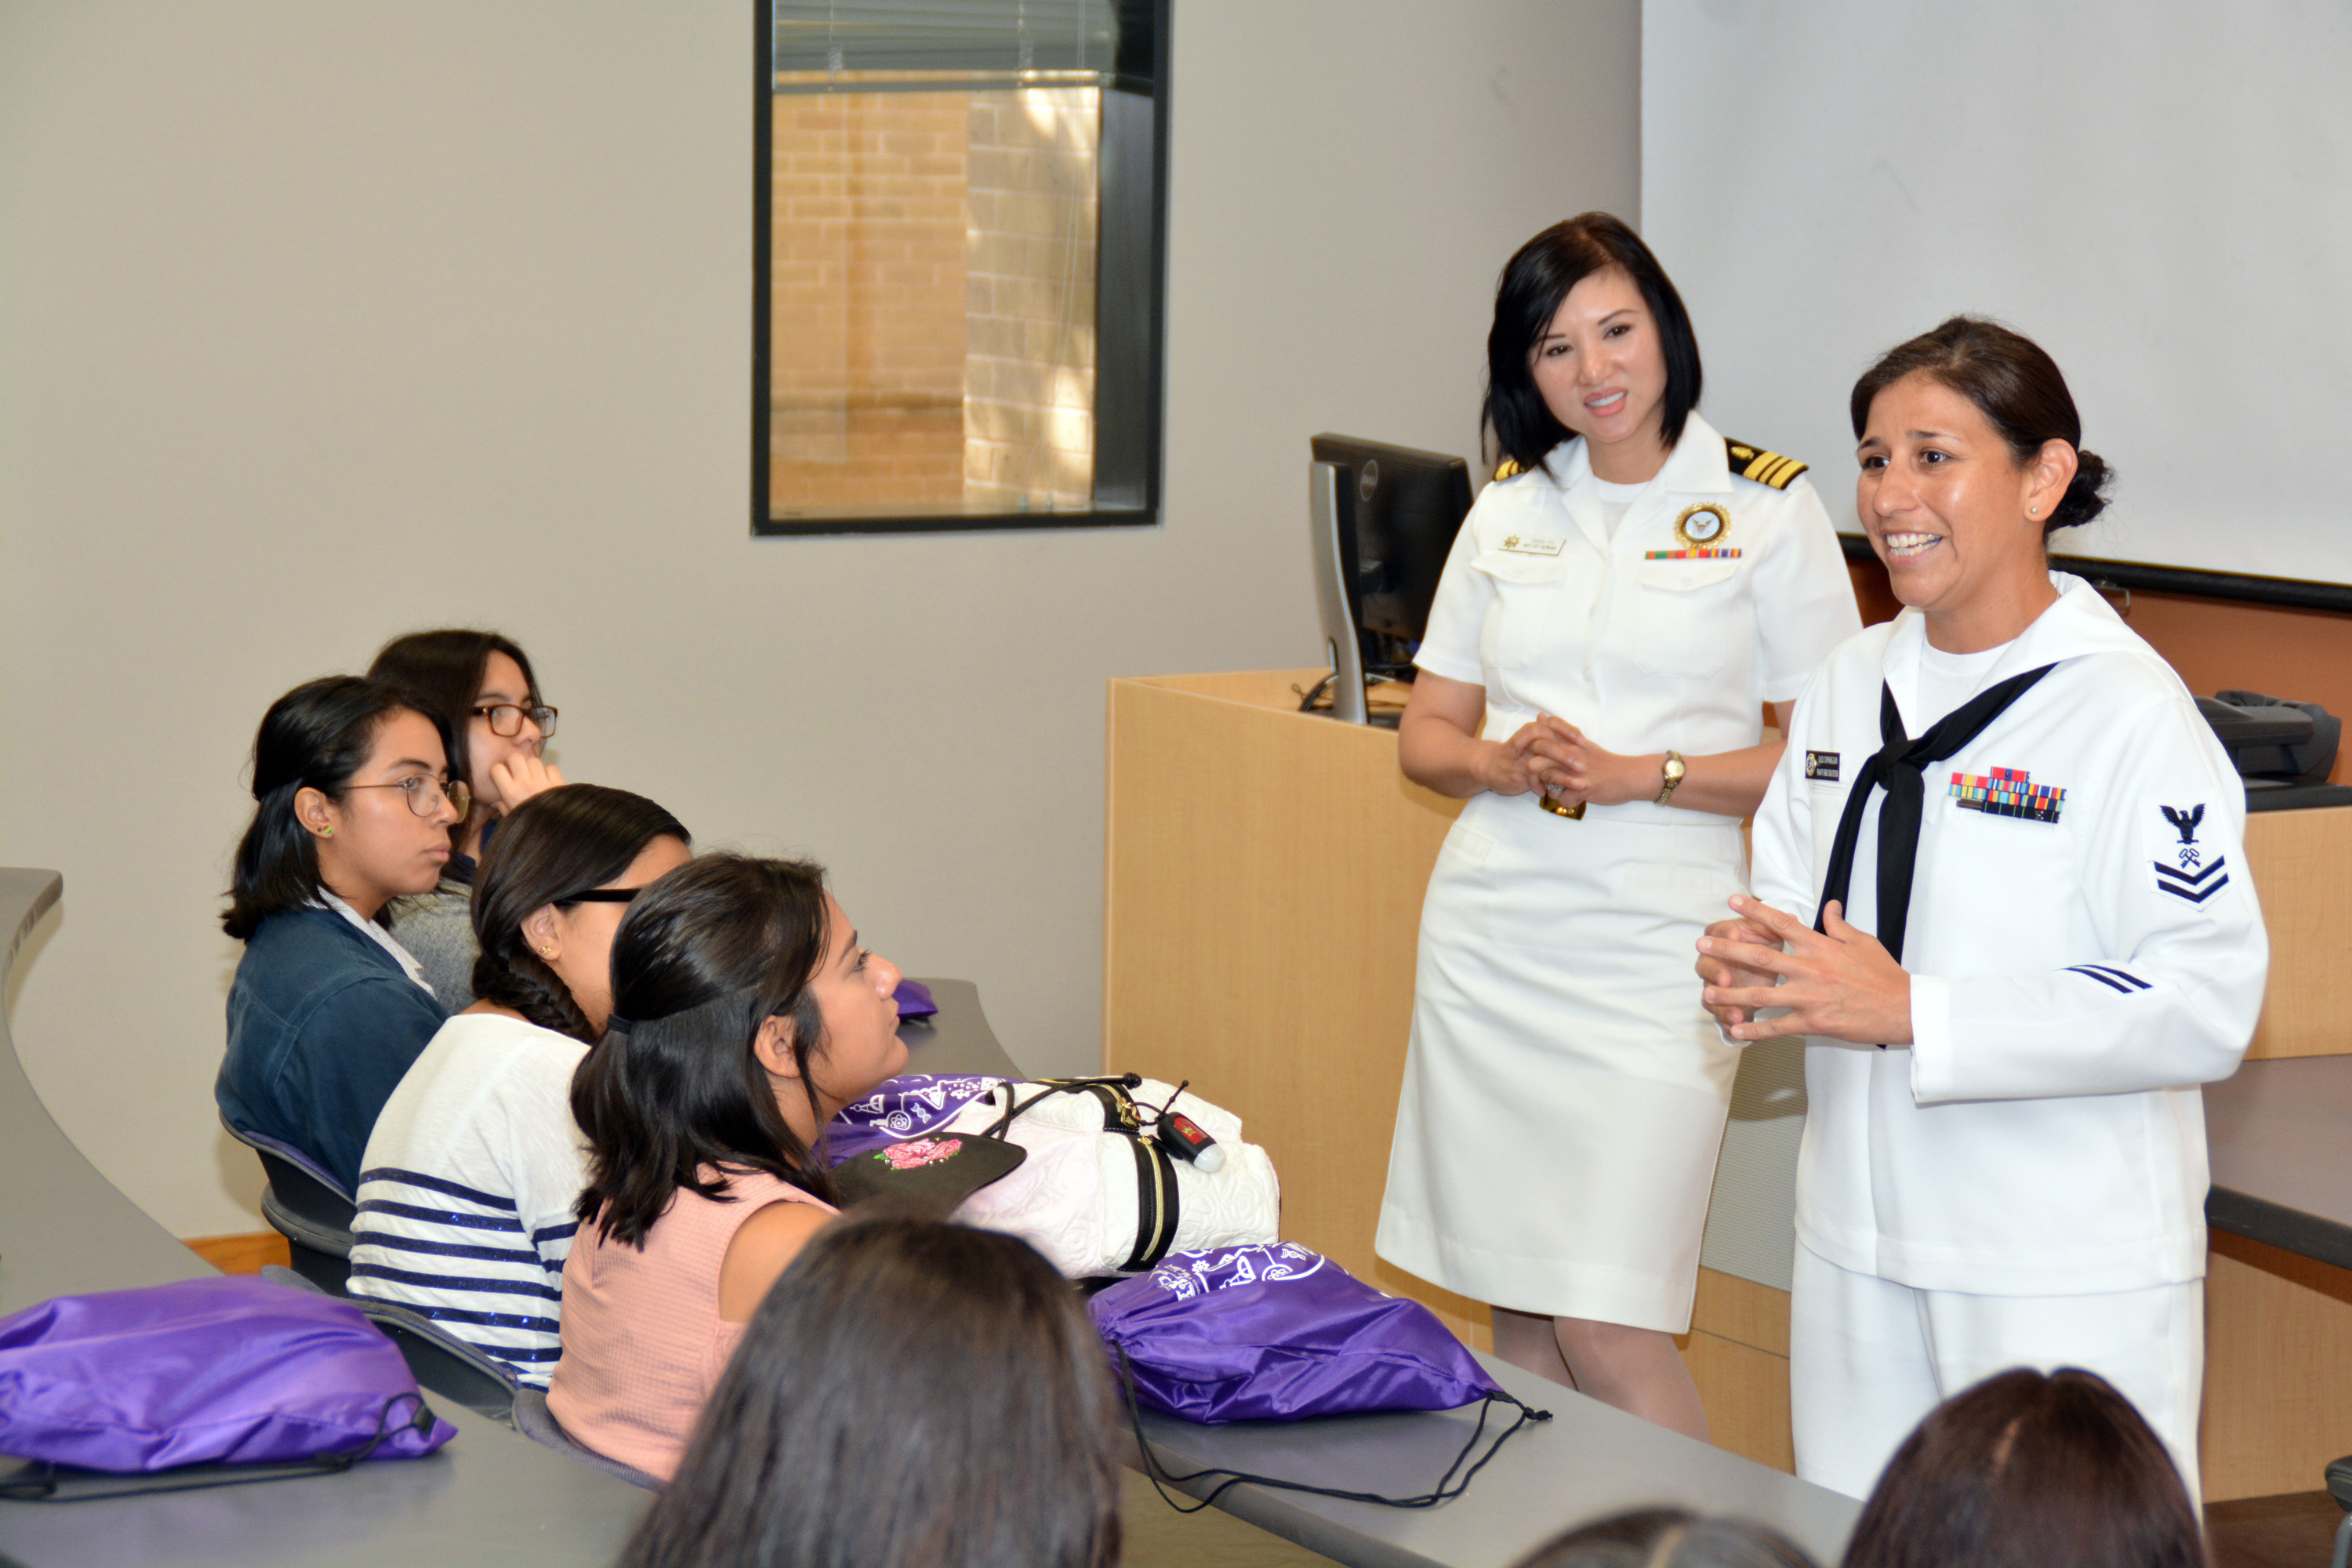 Navy Participates in STEM Event at Rio Grande Valley Campus